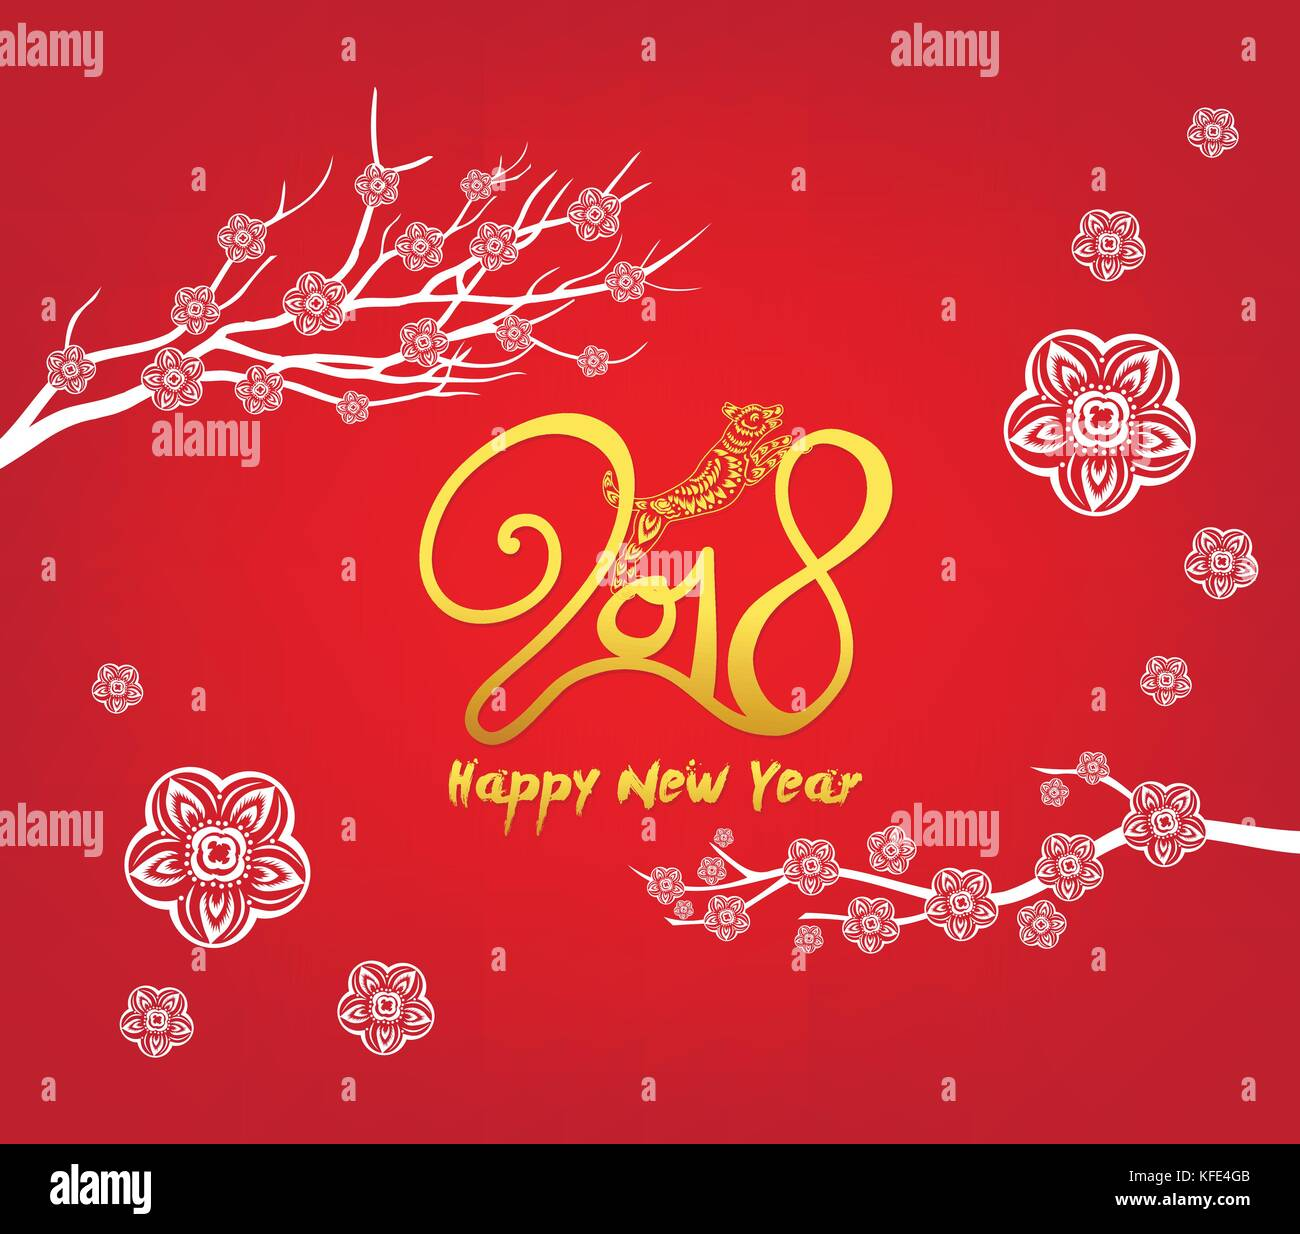 Happy new year 2018 greeting card and chinese new year of the dog happy new year 2018 greeting card and chinese new year of the dog cherry blossom background m4hsunfo